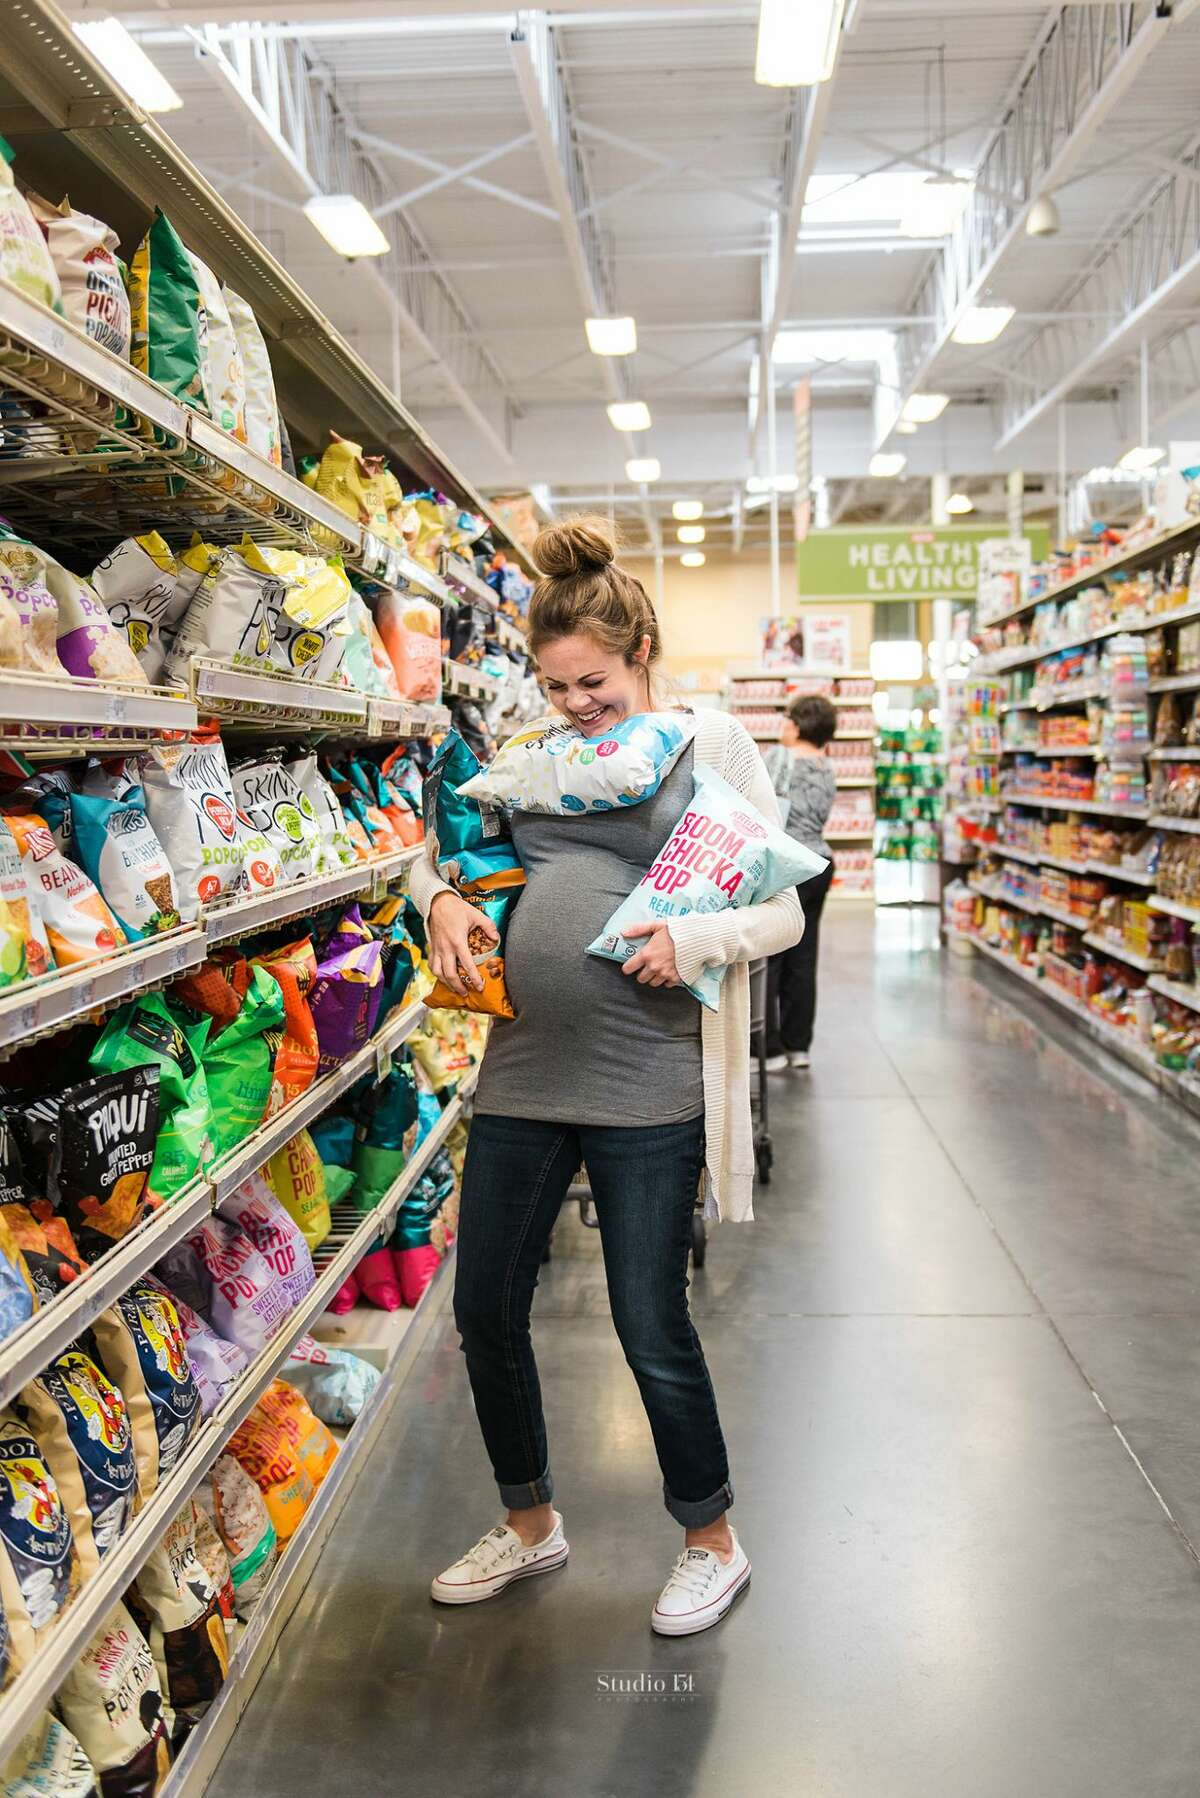 Amy Scott had a maternity photoshoot with photographer Lauren Giles of Studio154 at H-E-B in The Woodlands on April 23, 2018.